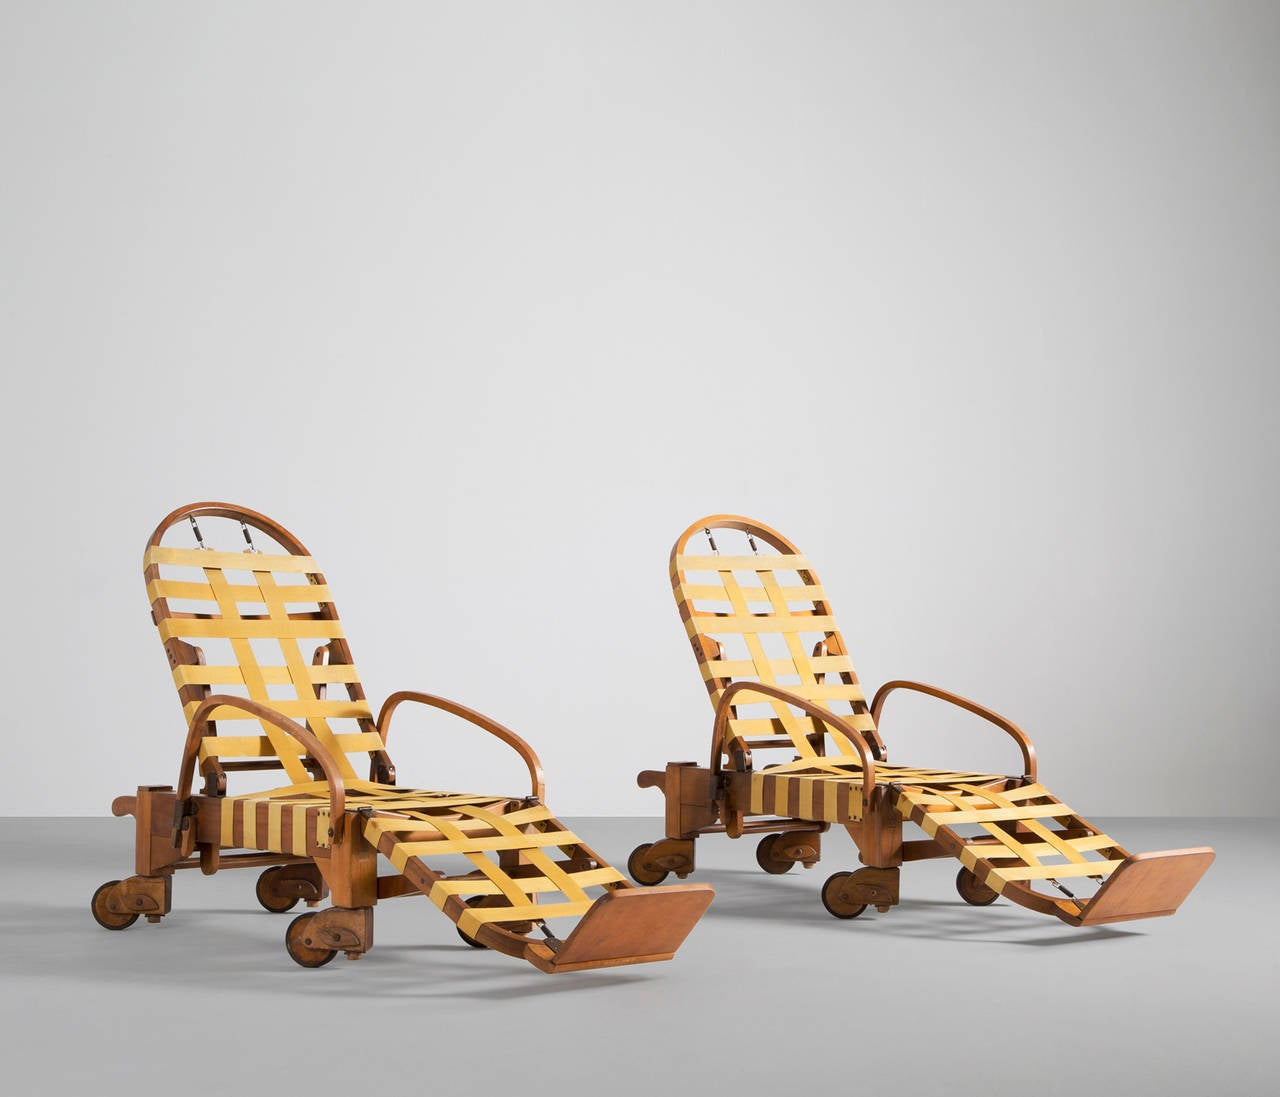 1940s set of two wooden chaise longues for sale at 1stdibs for Chaise wooden